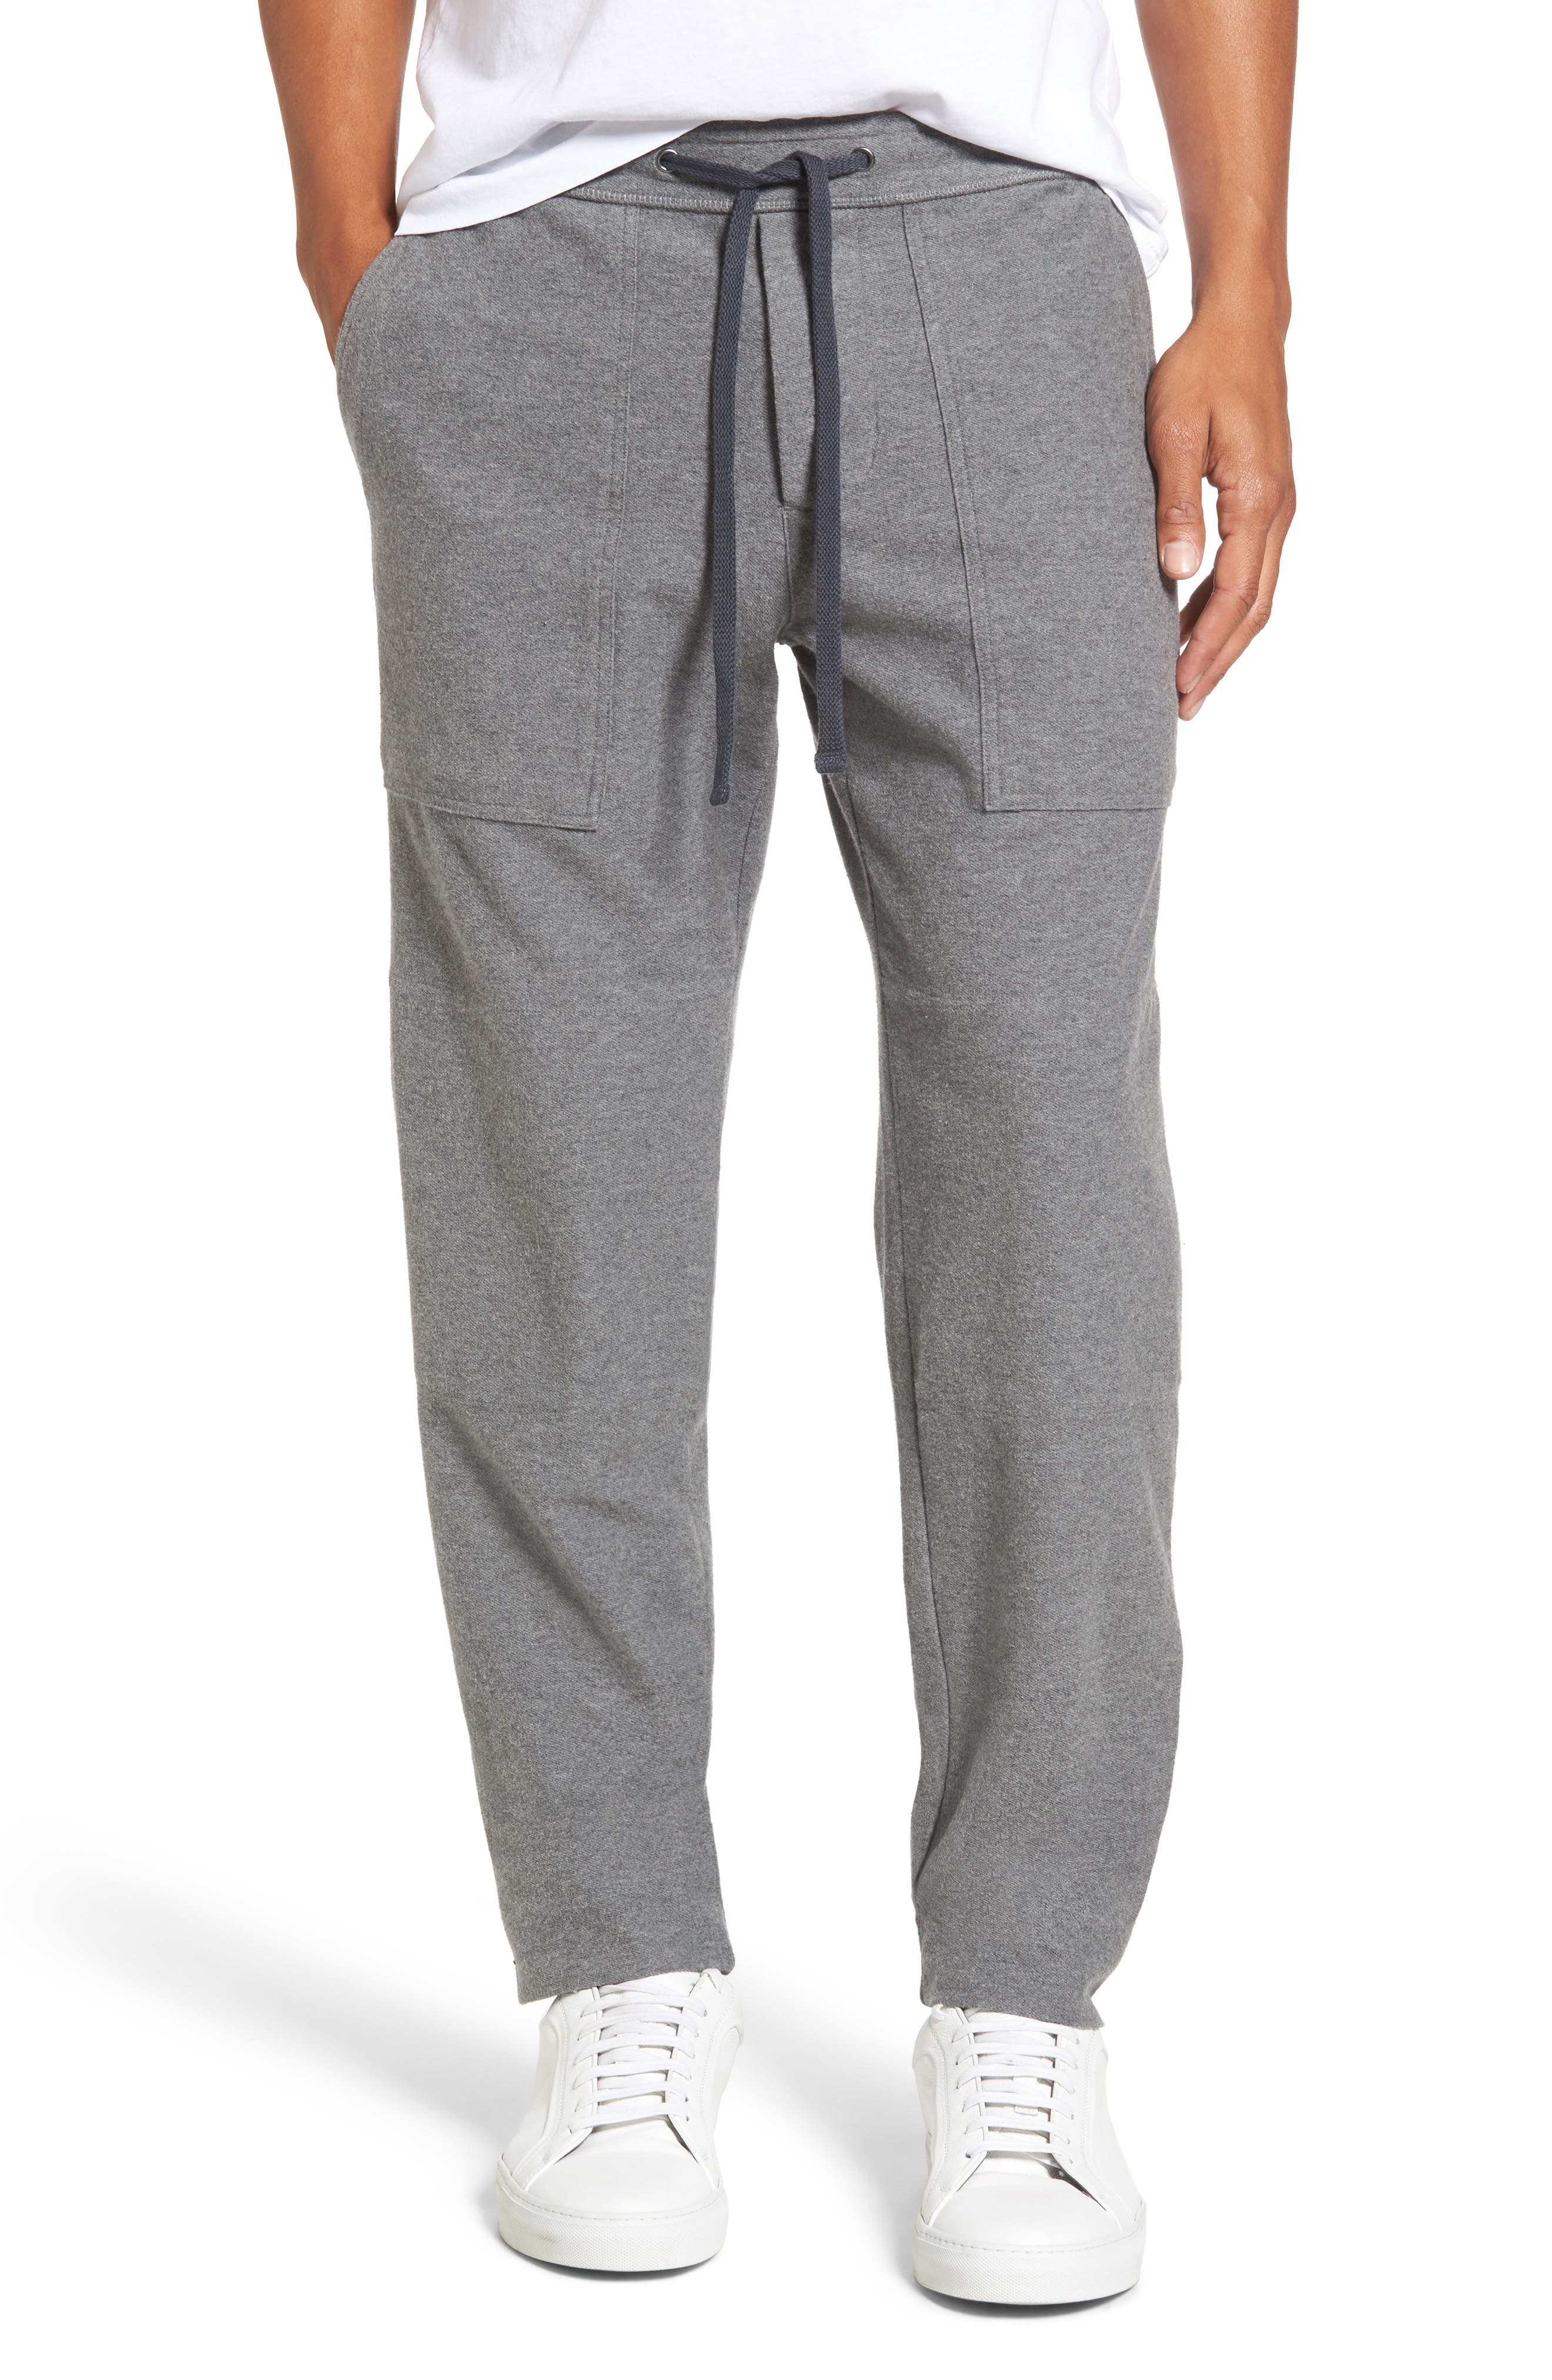 Heathered Knit Lounge Pants,                         Main,                         color, 086